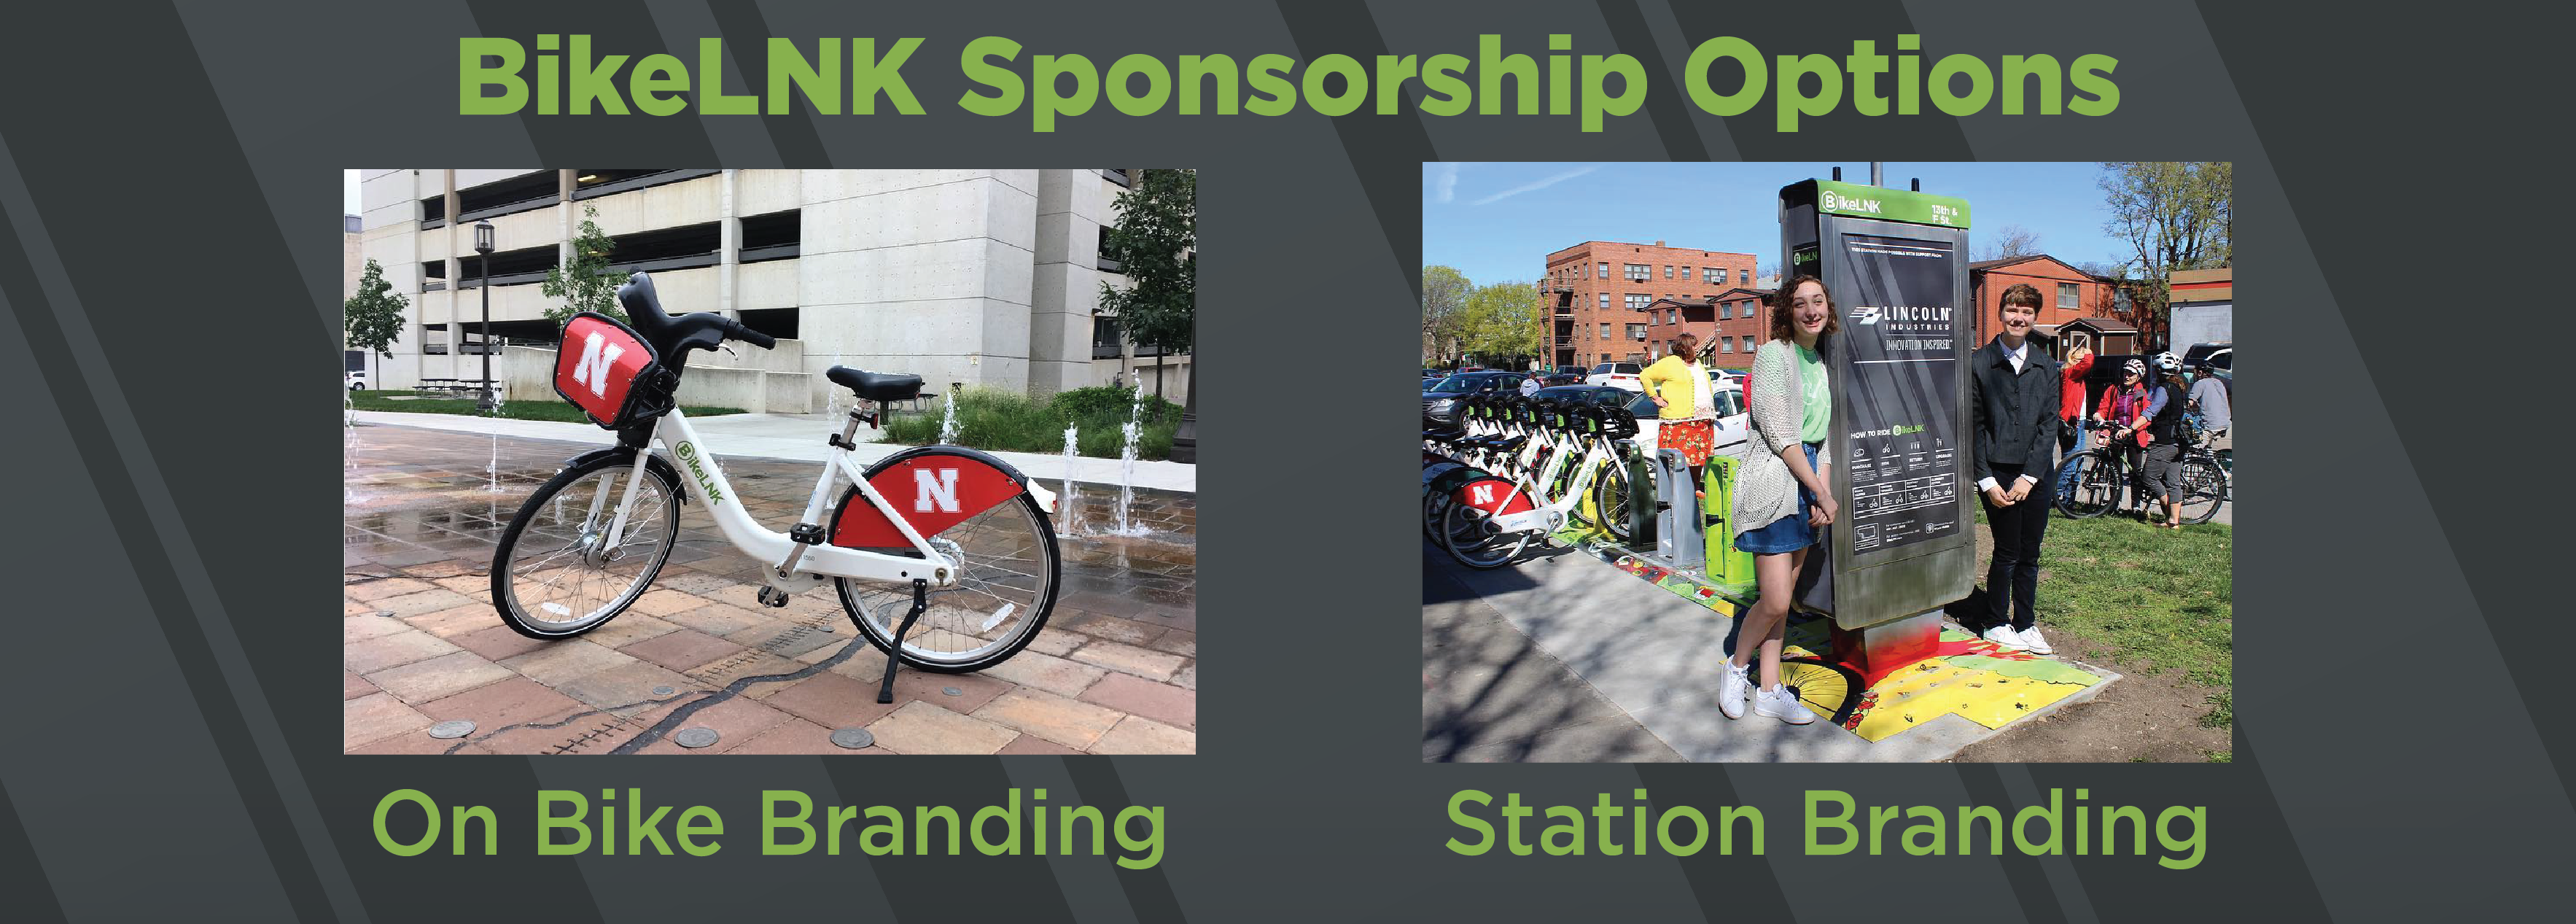 BikeLNK Sponsorship Options